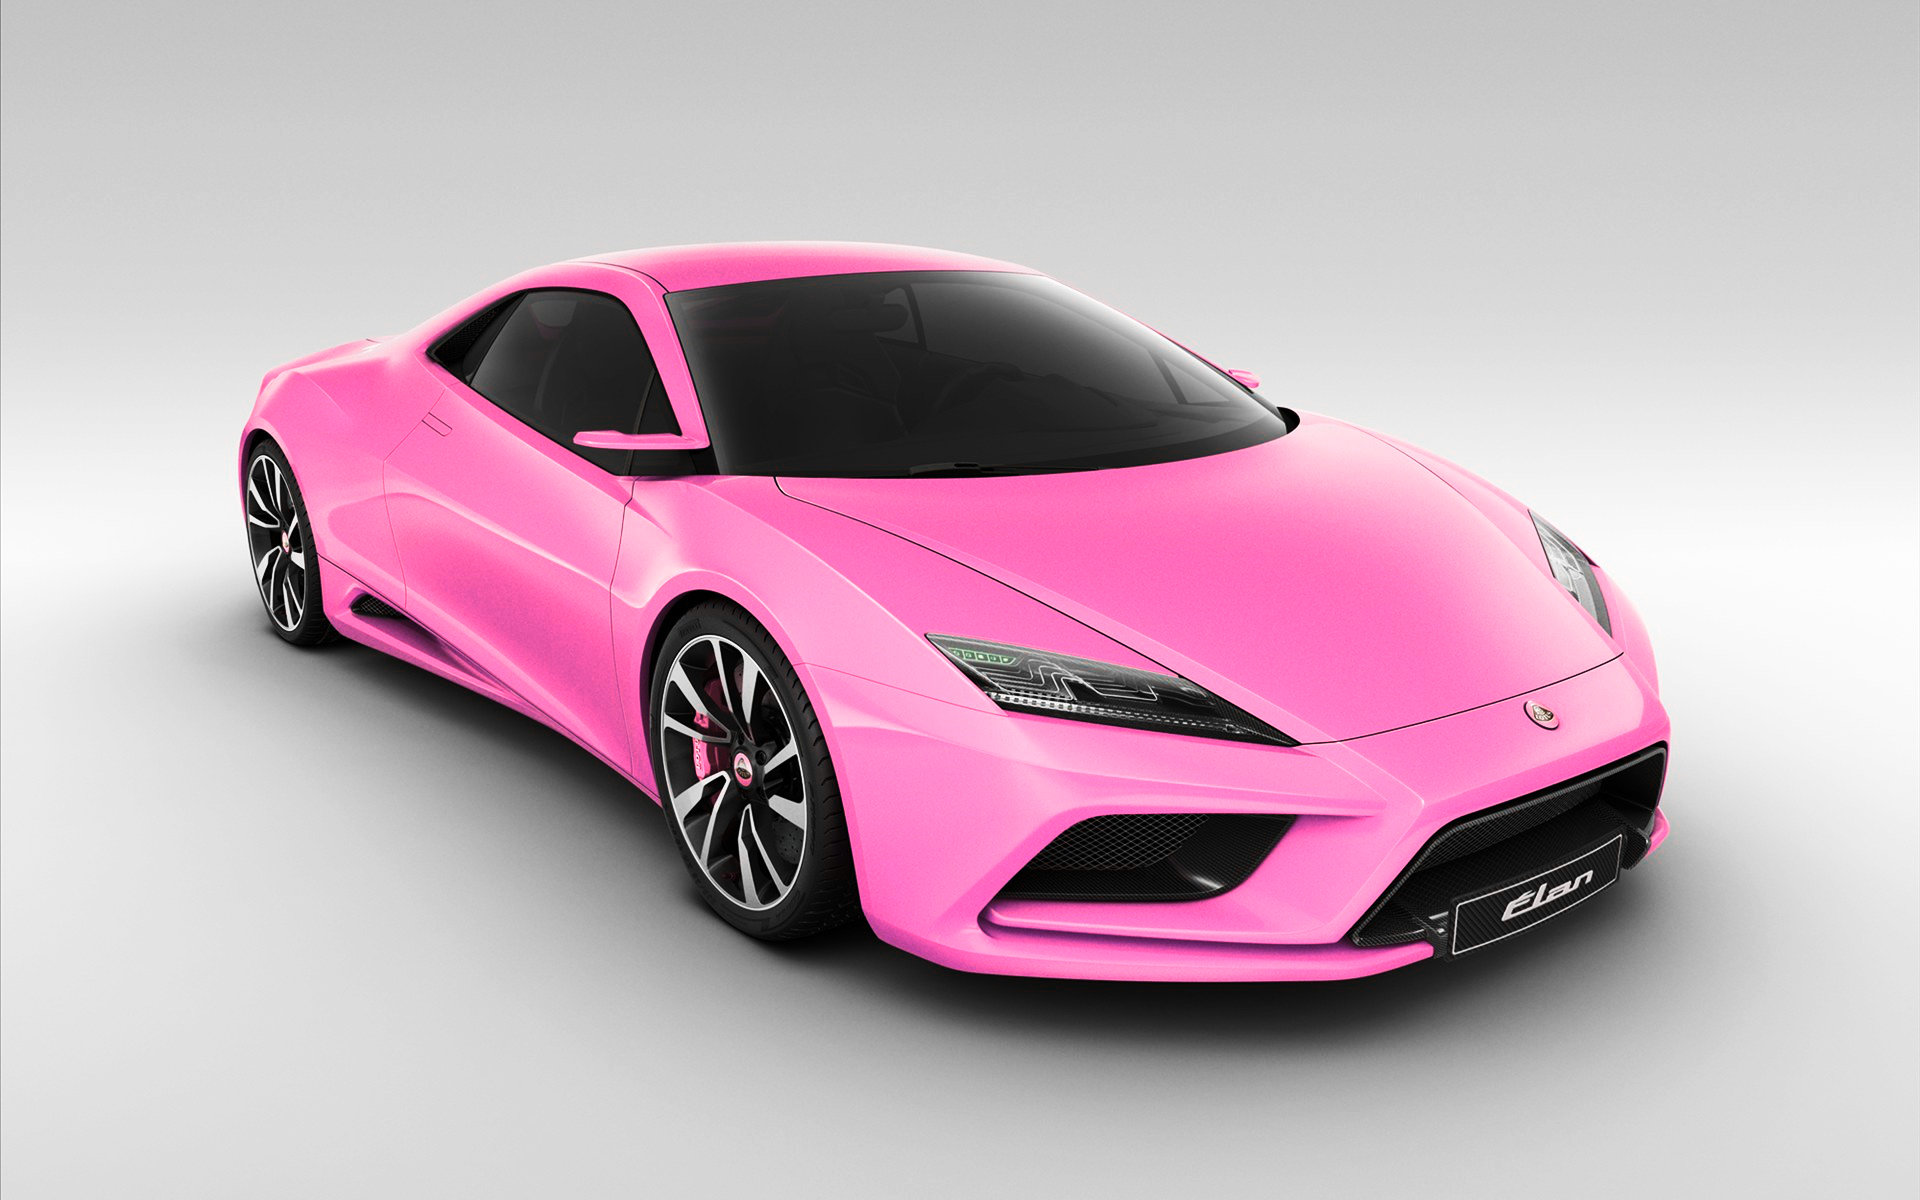 lamborghini aventador roadster release date with Pink Car Wallpaper on New Lamborghini Centenario Unveiled At The 2016 Geneva Motor Show in addition Pink Cars Wallpaper further 2017 Ferrari Laferrari Aperta further Pink Car Wallpaper besides 2017 Lamborghini Aventador Aggressive Facelift Spied.